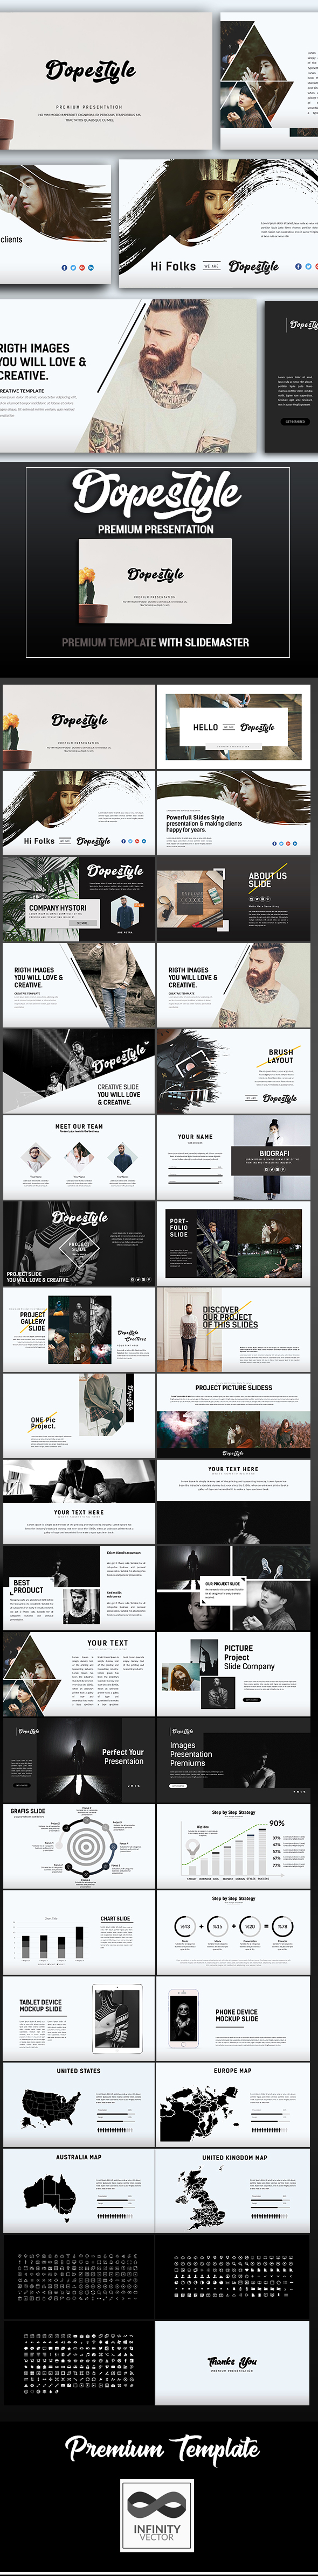 dopestyle premium powerpoint templateinfinity-vector, Powerpoint templates